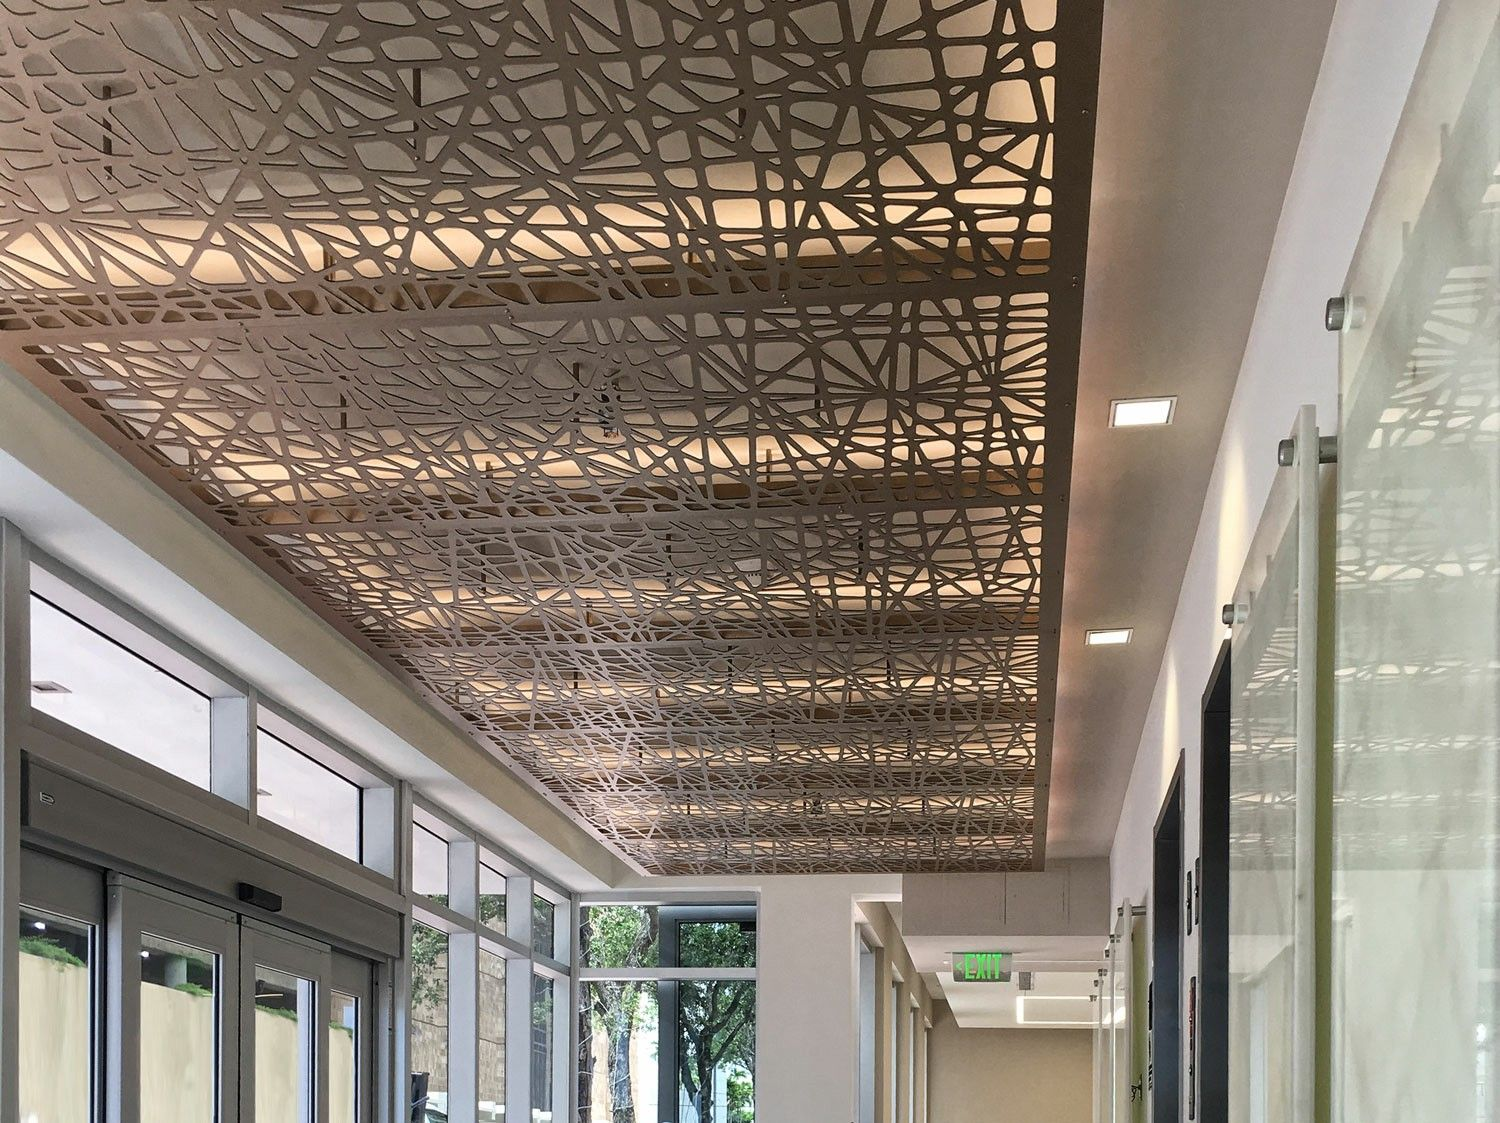 Decorative Cnc Screen Ceiling Panels With Led Lights Elevator Lobby Suspendedceilings Custom Suspended Ceiling Design False Ceiling False Ceiling Design